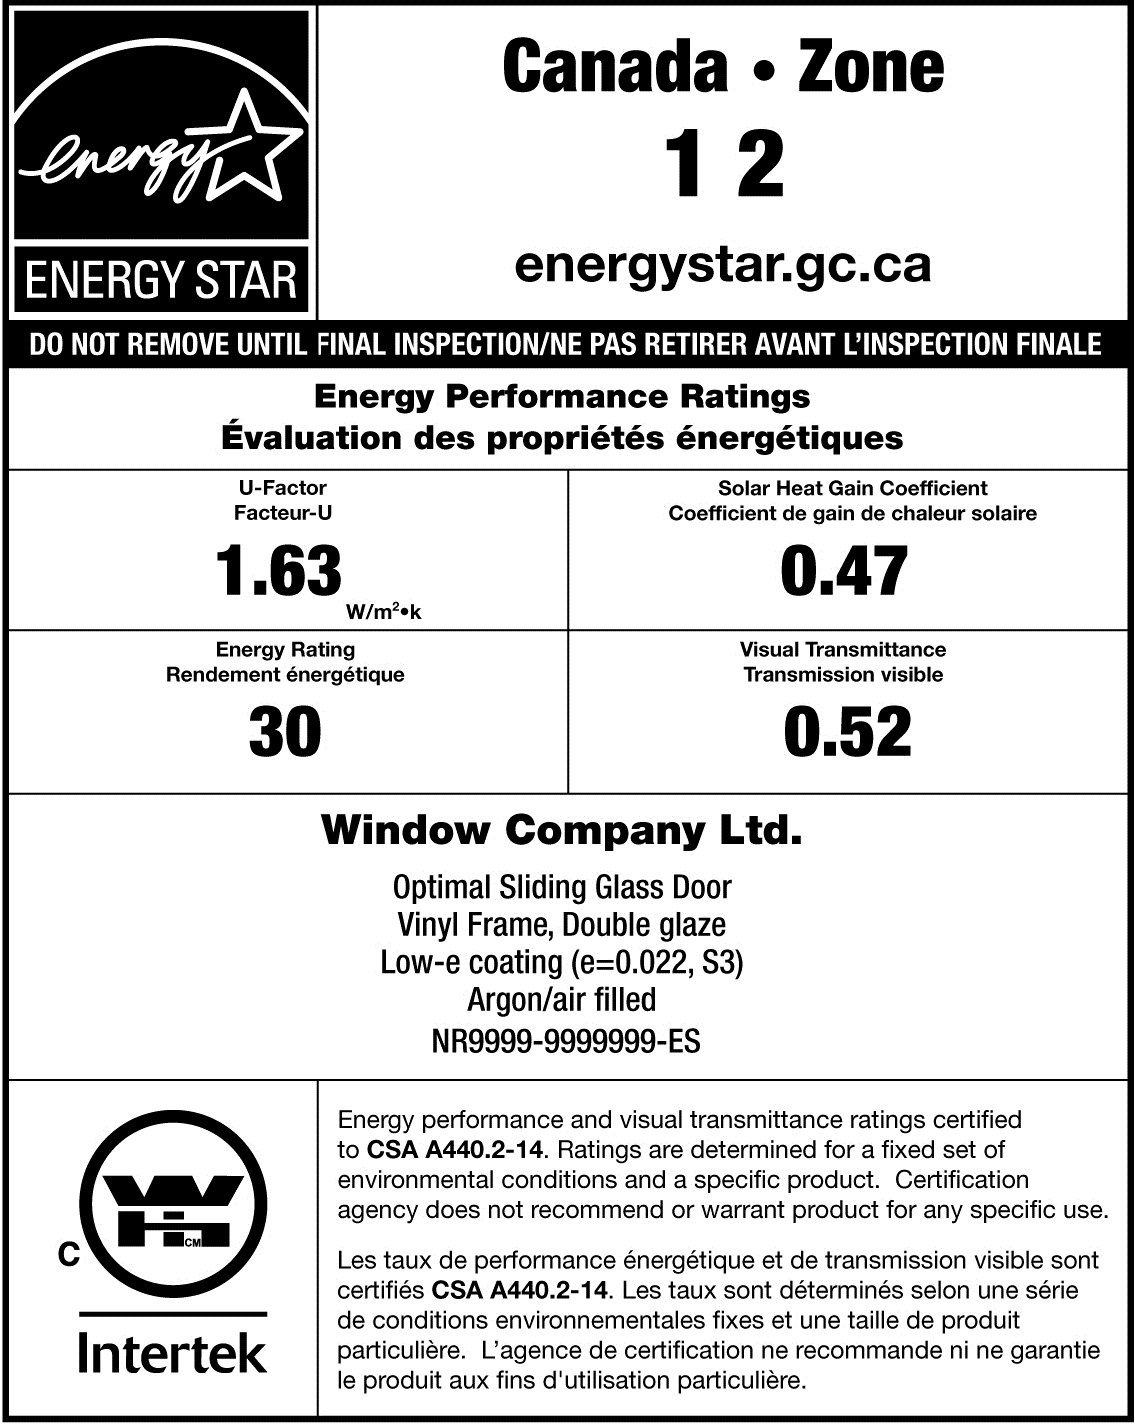 Sample ENERGY STAR label with no map indicating that the product is certified for Zones 1 and 2 with the energy performance label showing the specific performance ratings, brand name, model description and the certification mark of Intertek.